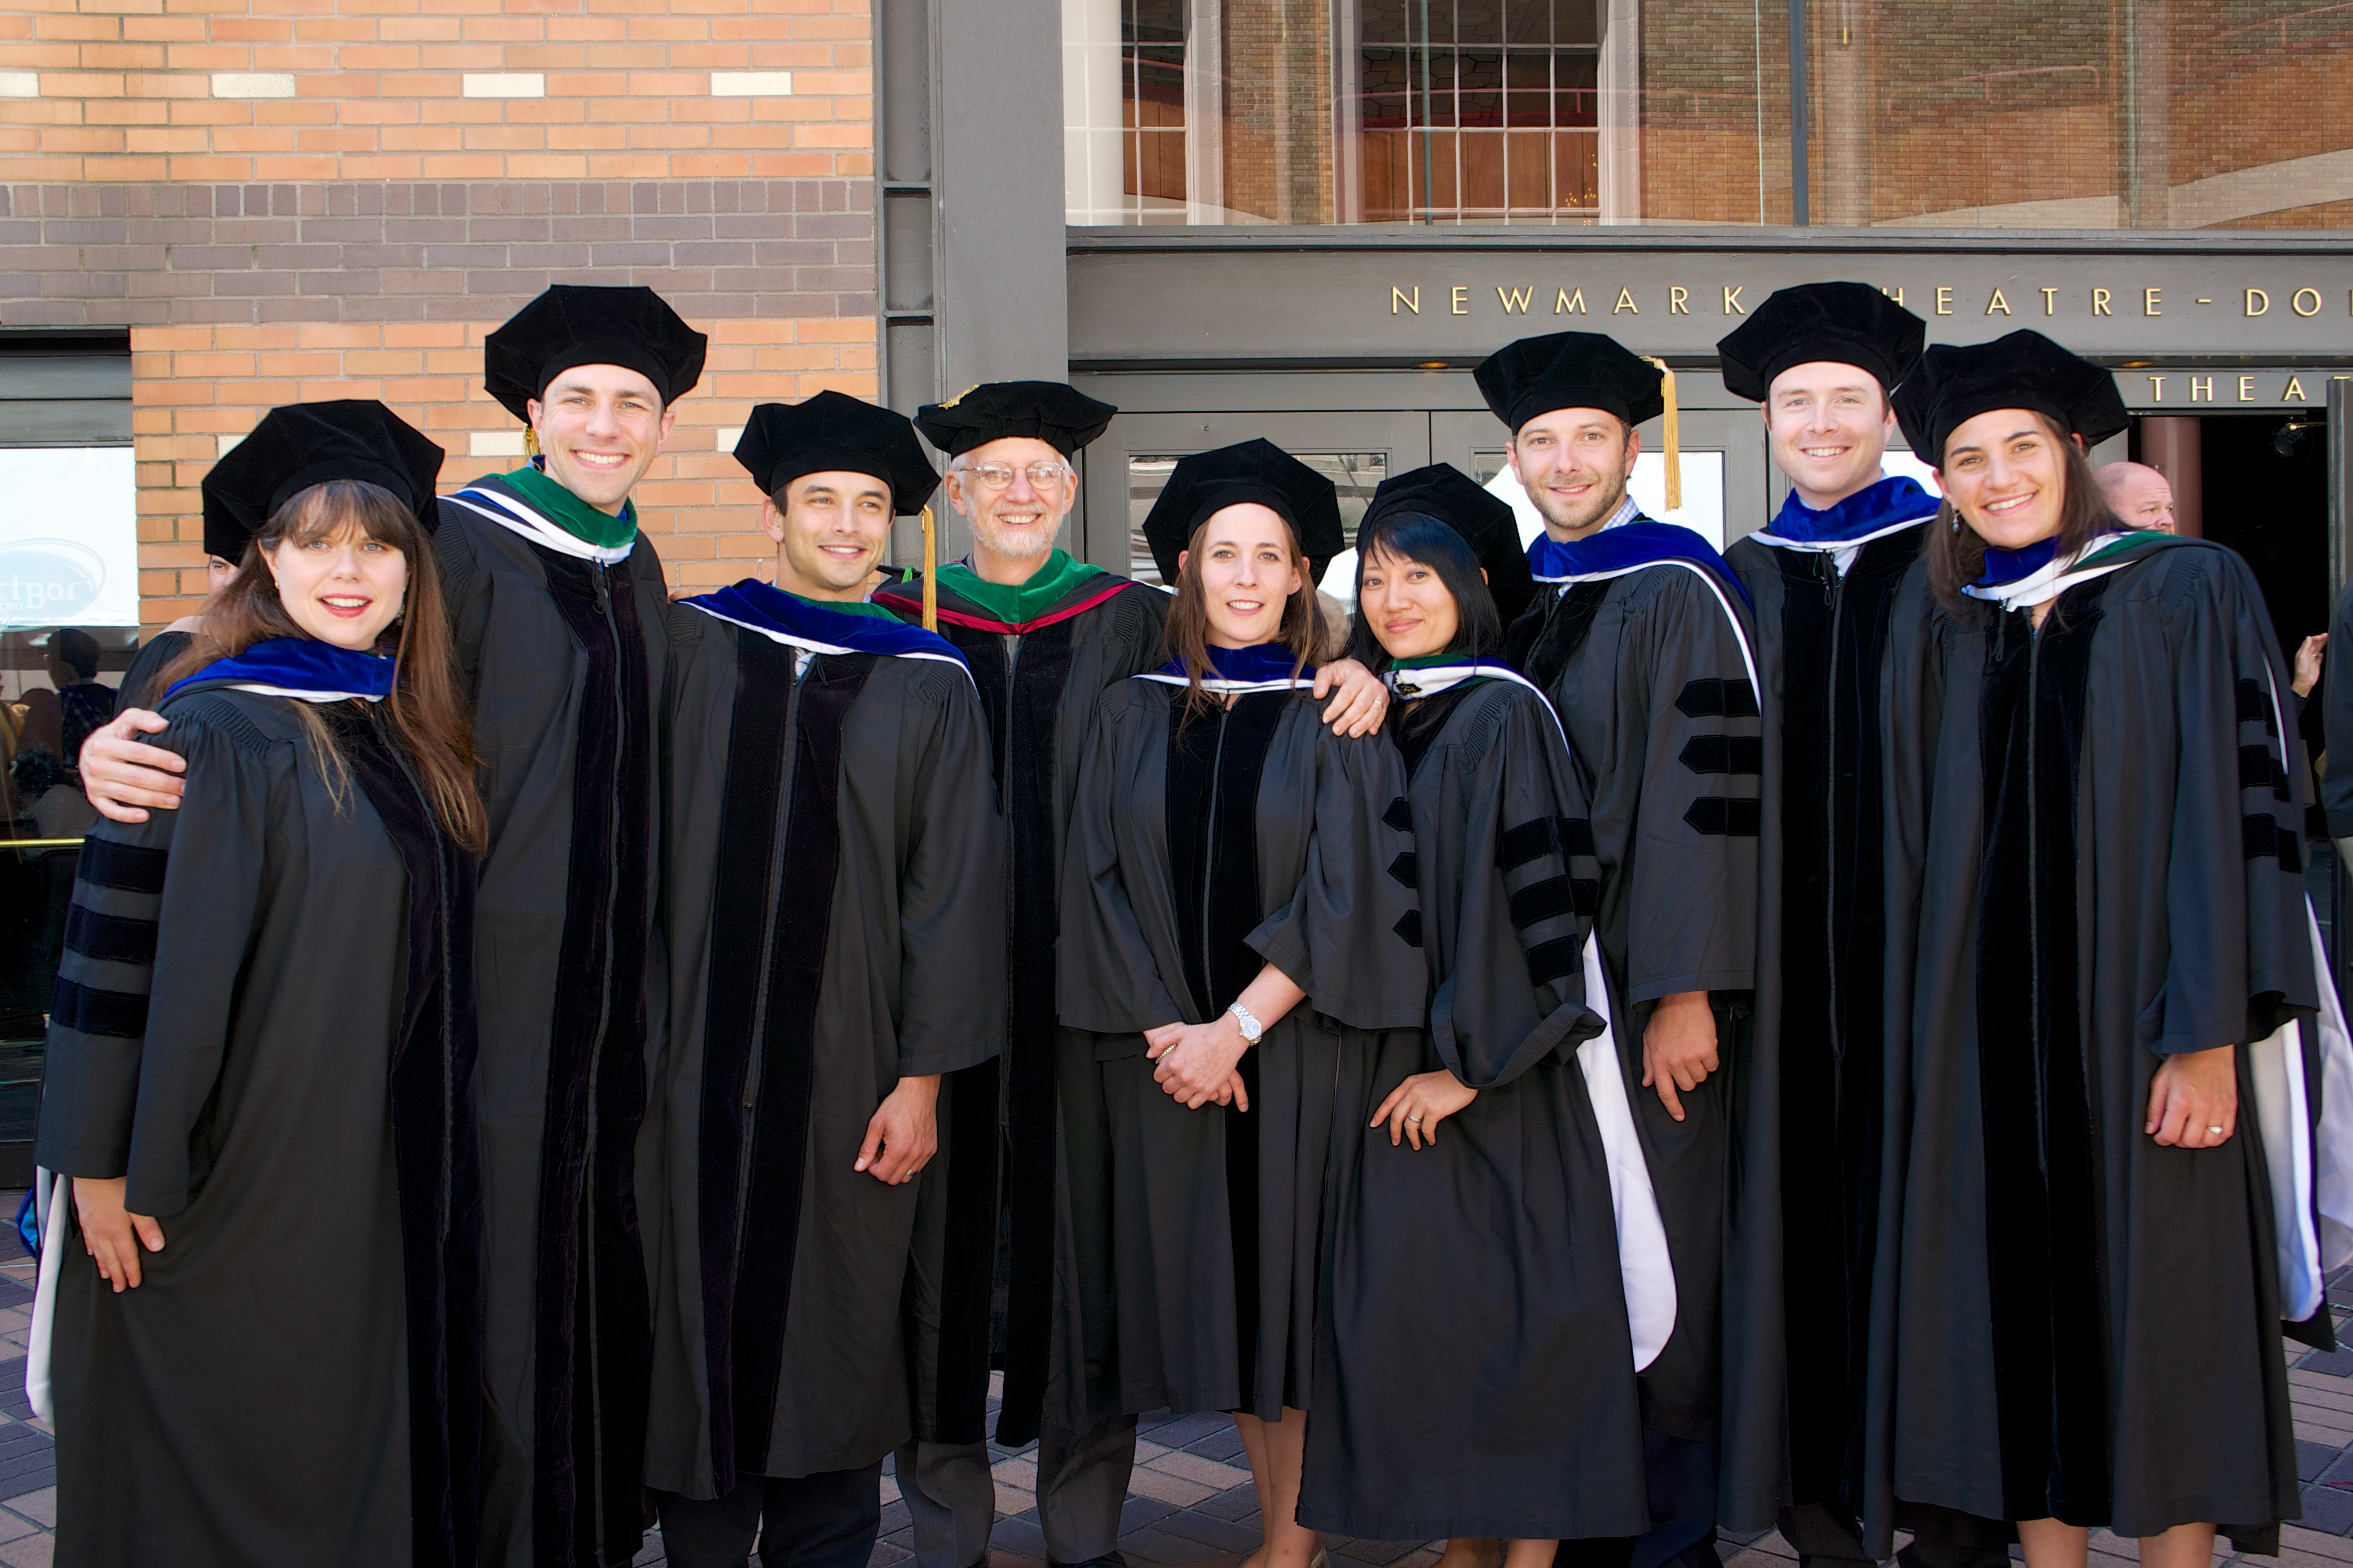 2013 MD/PhD graduates with Dr. Jacoby